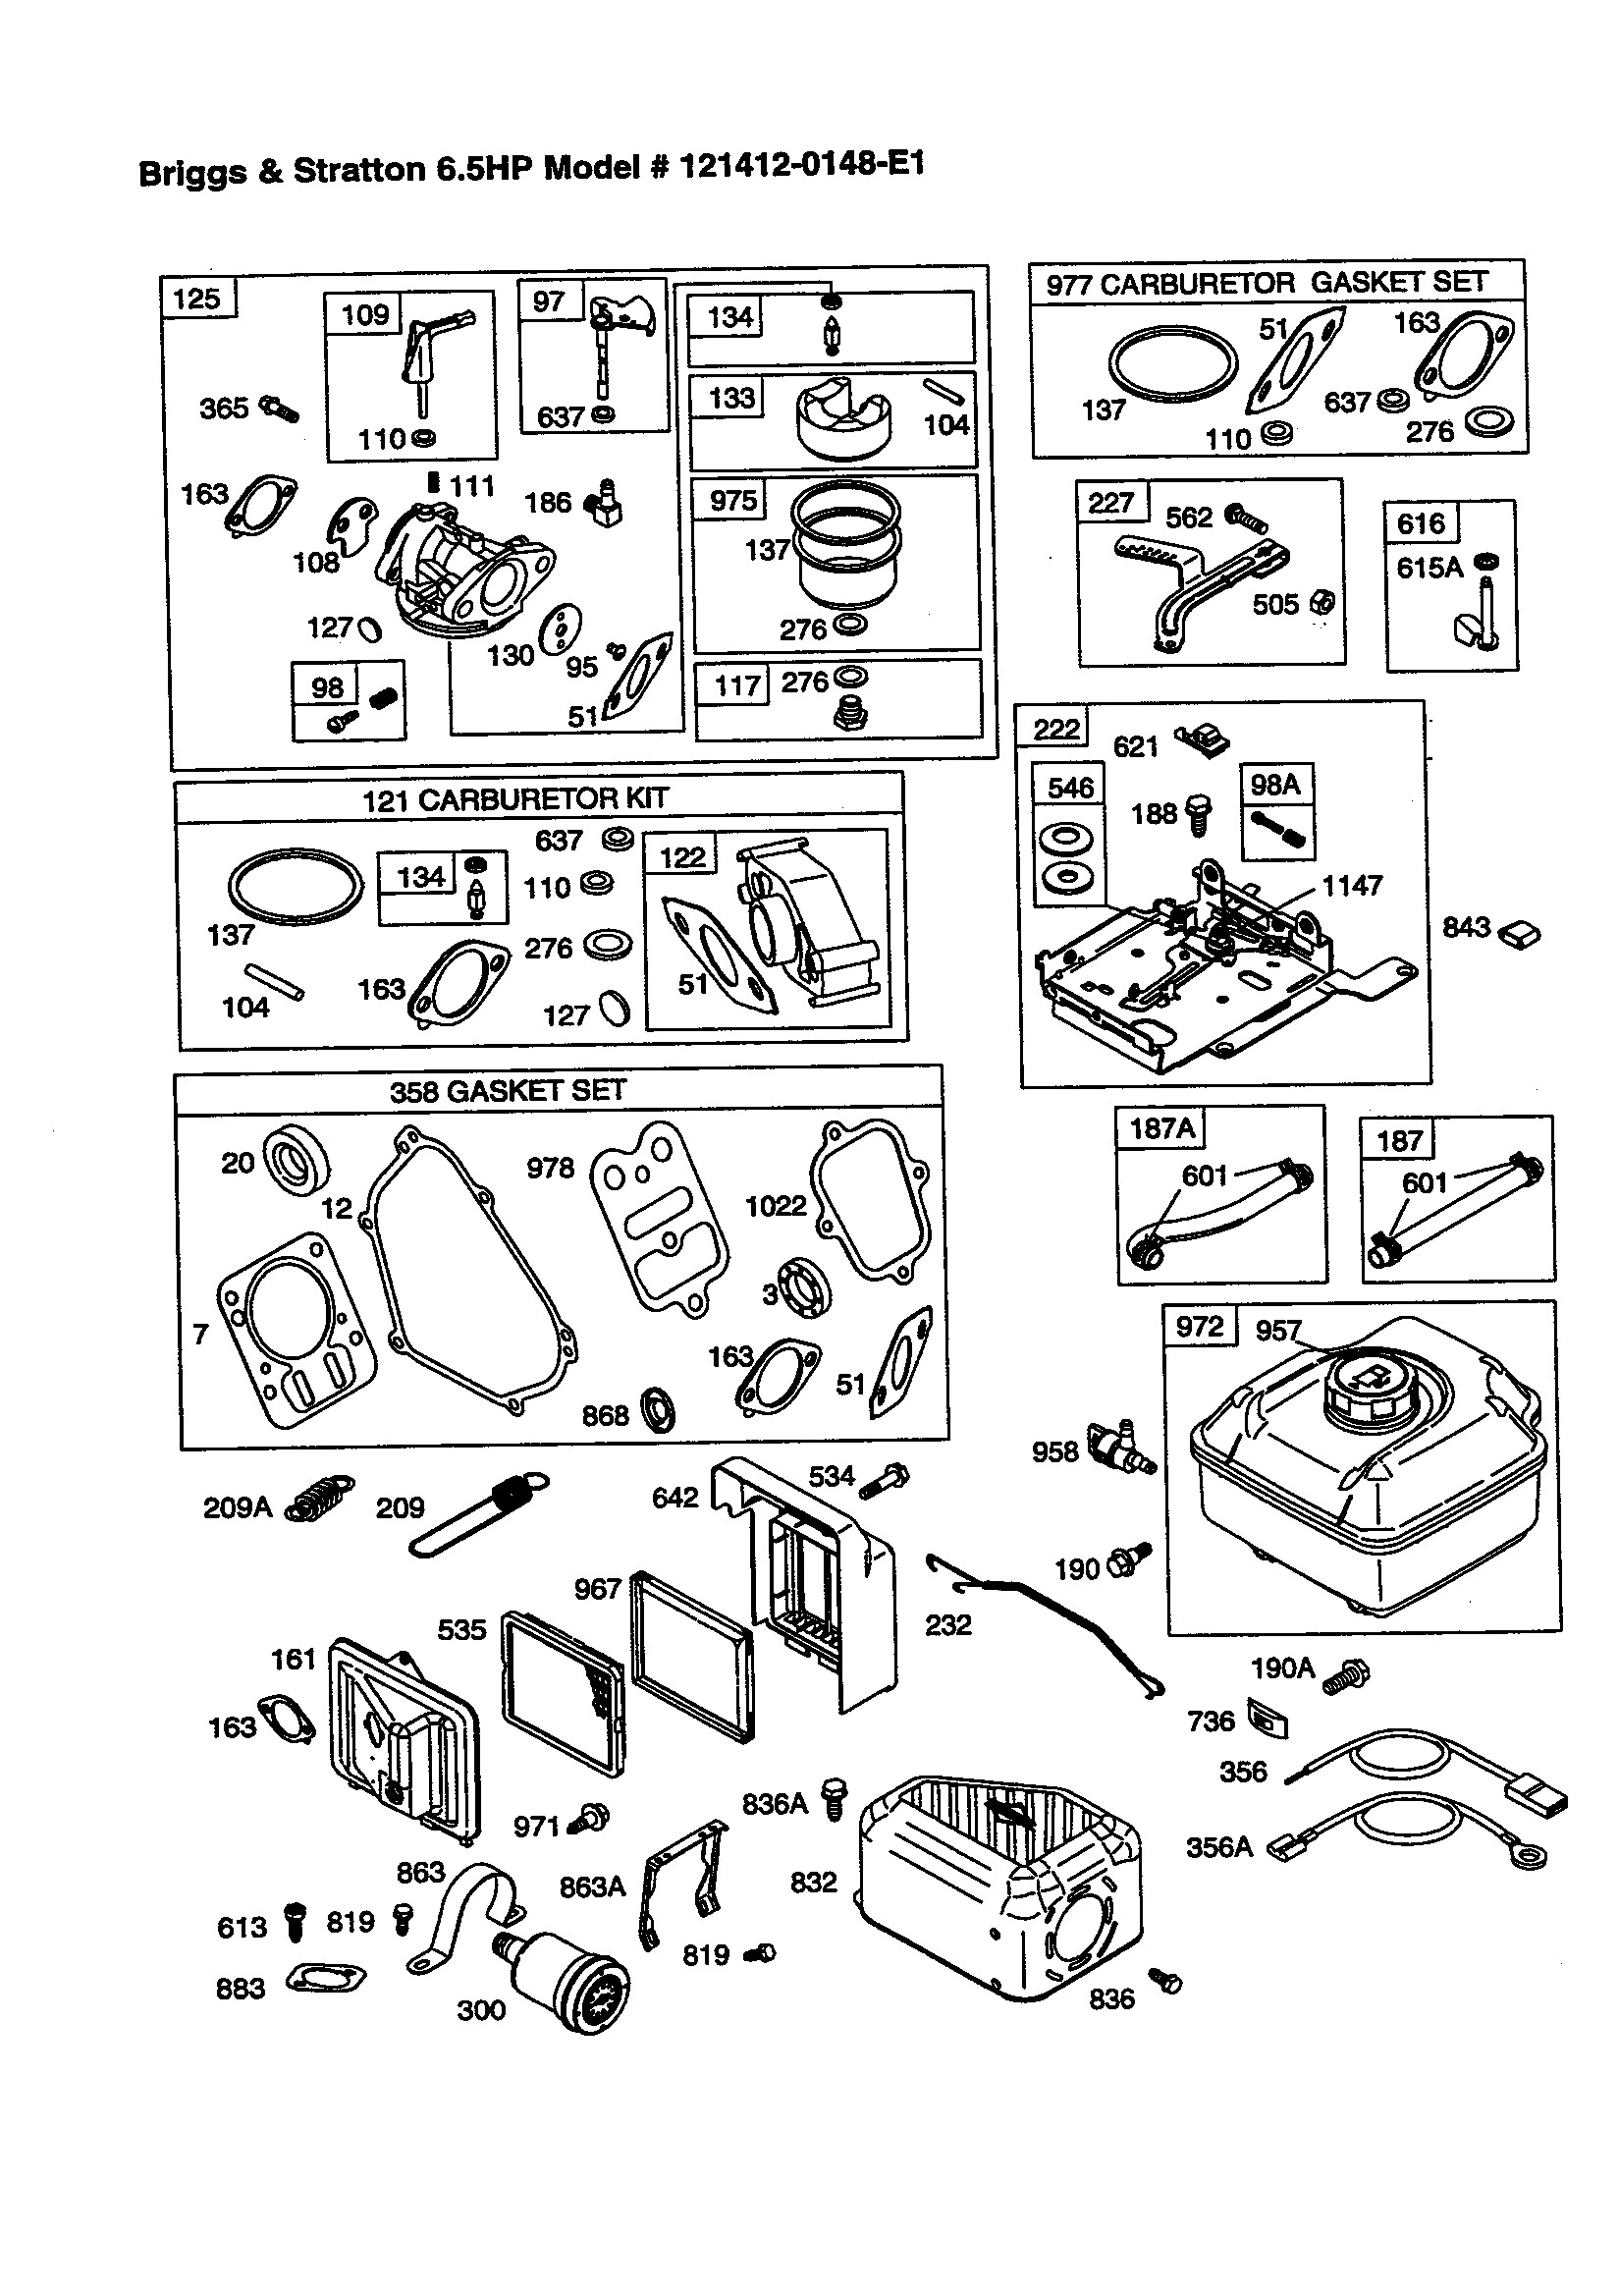 Briggs and Stratton Engine Parts Diagram Fancy Briggs and Stratton Engine Parts Diagram Vignette Electrical Of Briggs and Stratton Engine Parts Diagram